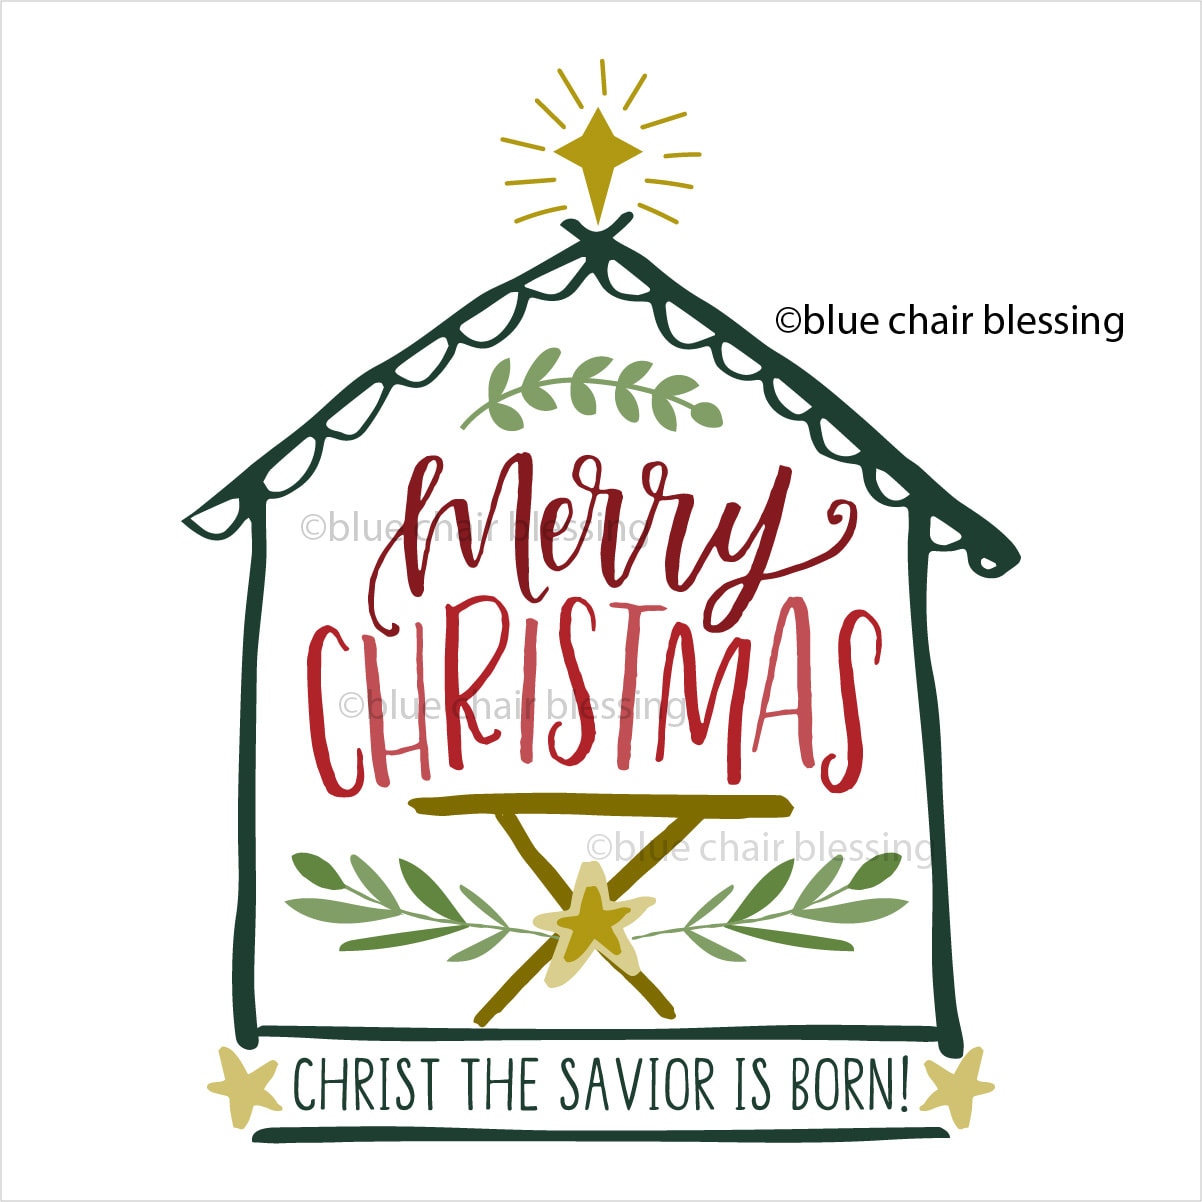 Christian Christmas.Hand Lettered Christmas Graphic Clip Art For Crafting May The Peace Of Christ Be With You For Personal Use Creative License To Sell Available